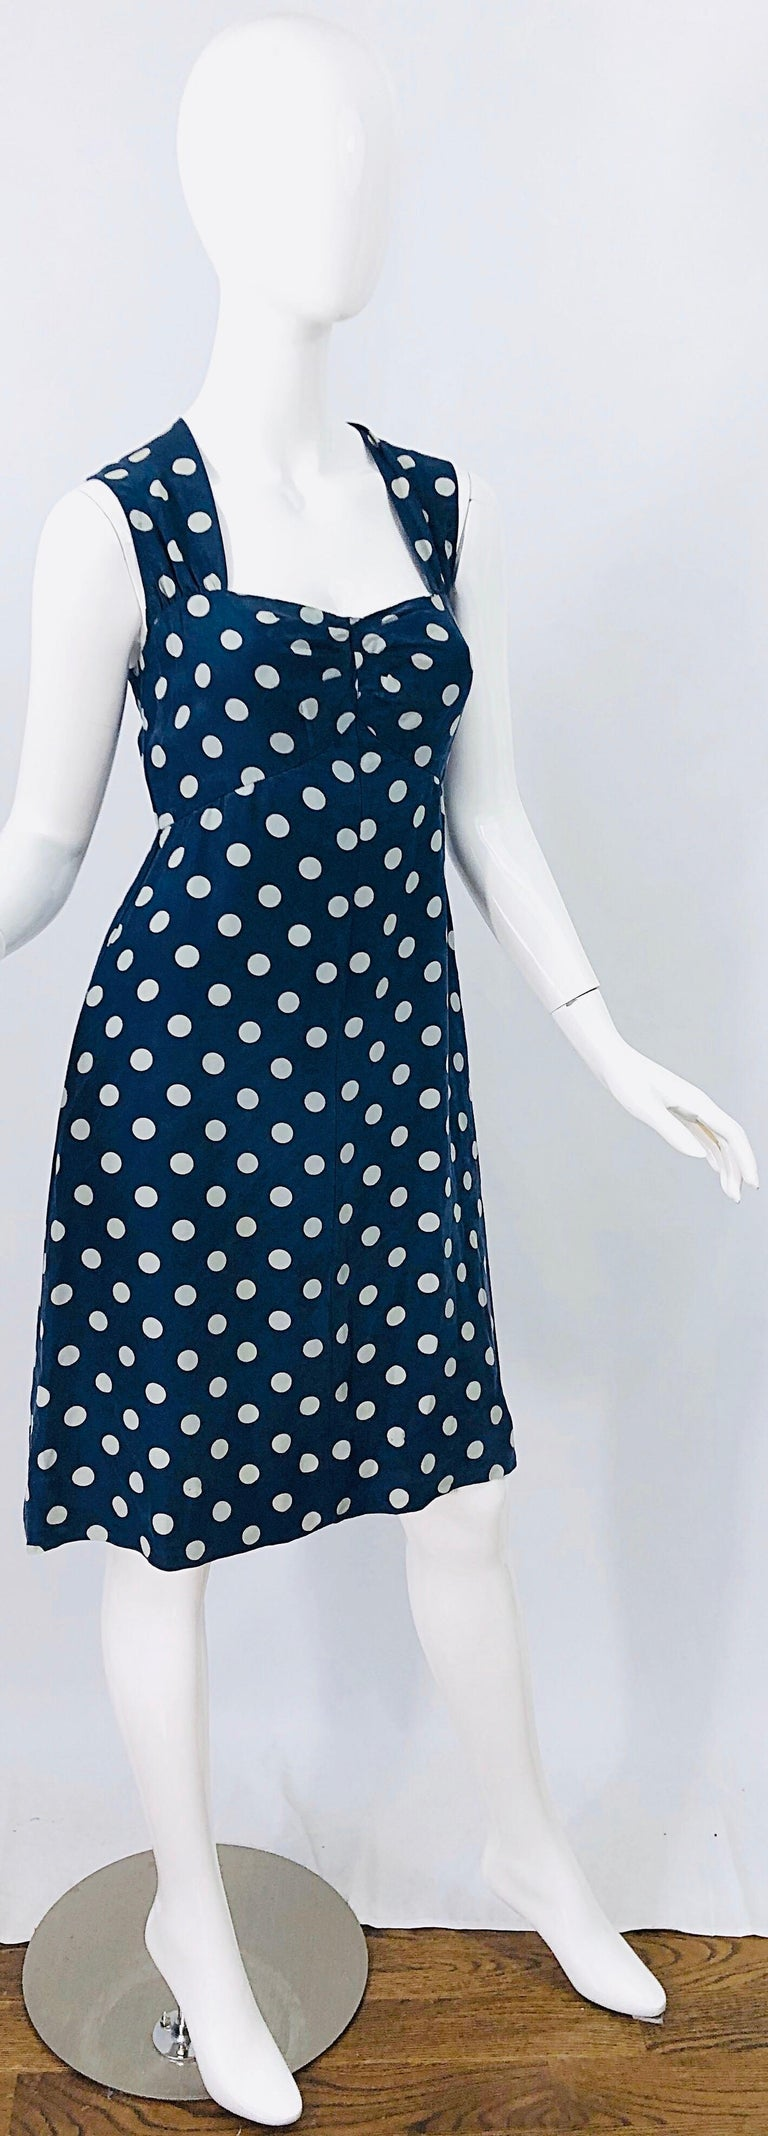 Vintage Yves Saint Laurent 1980s Navy Blue + White Polka Dot Silk 80s Dress YSL For Sale 6